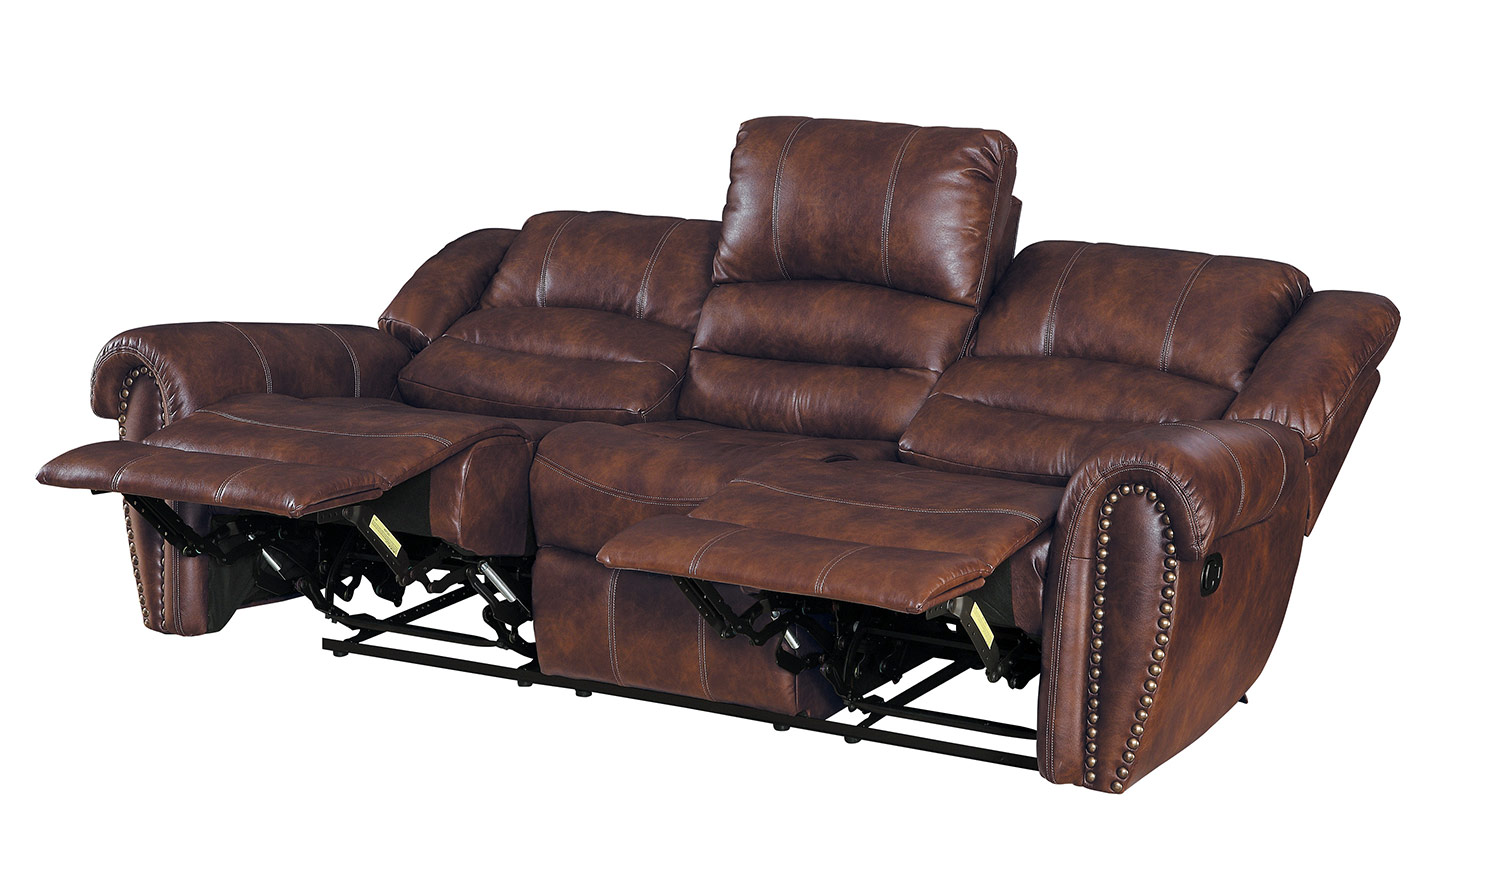 Homelegance Center Hill Double Reclining Sofa - Dark Brown